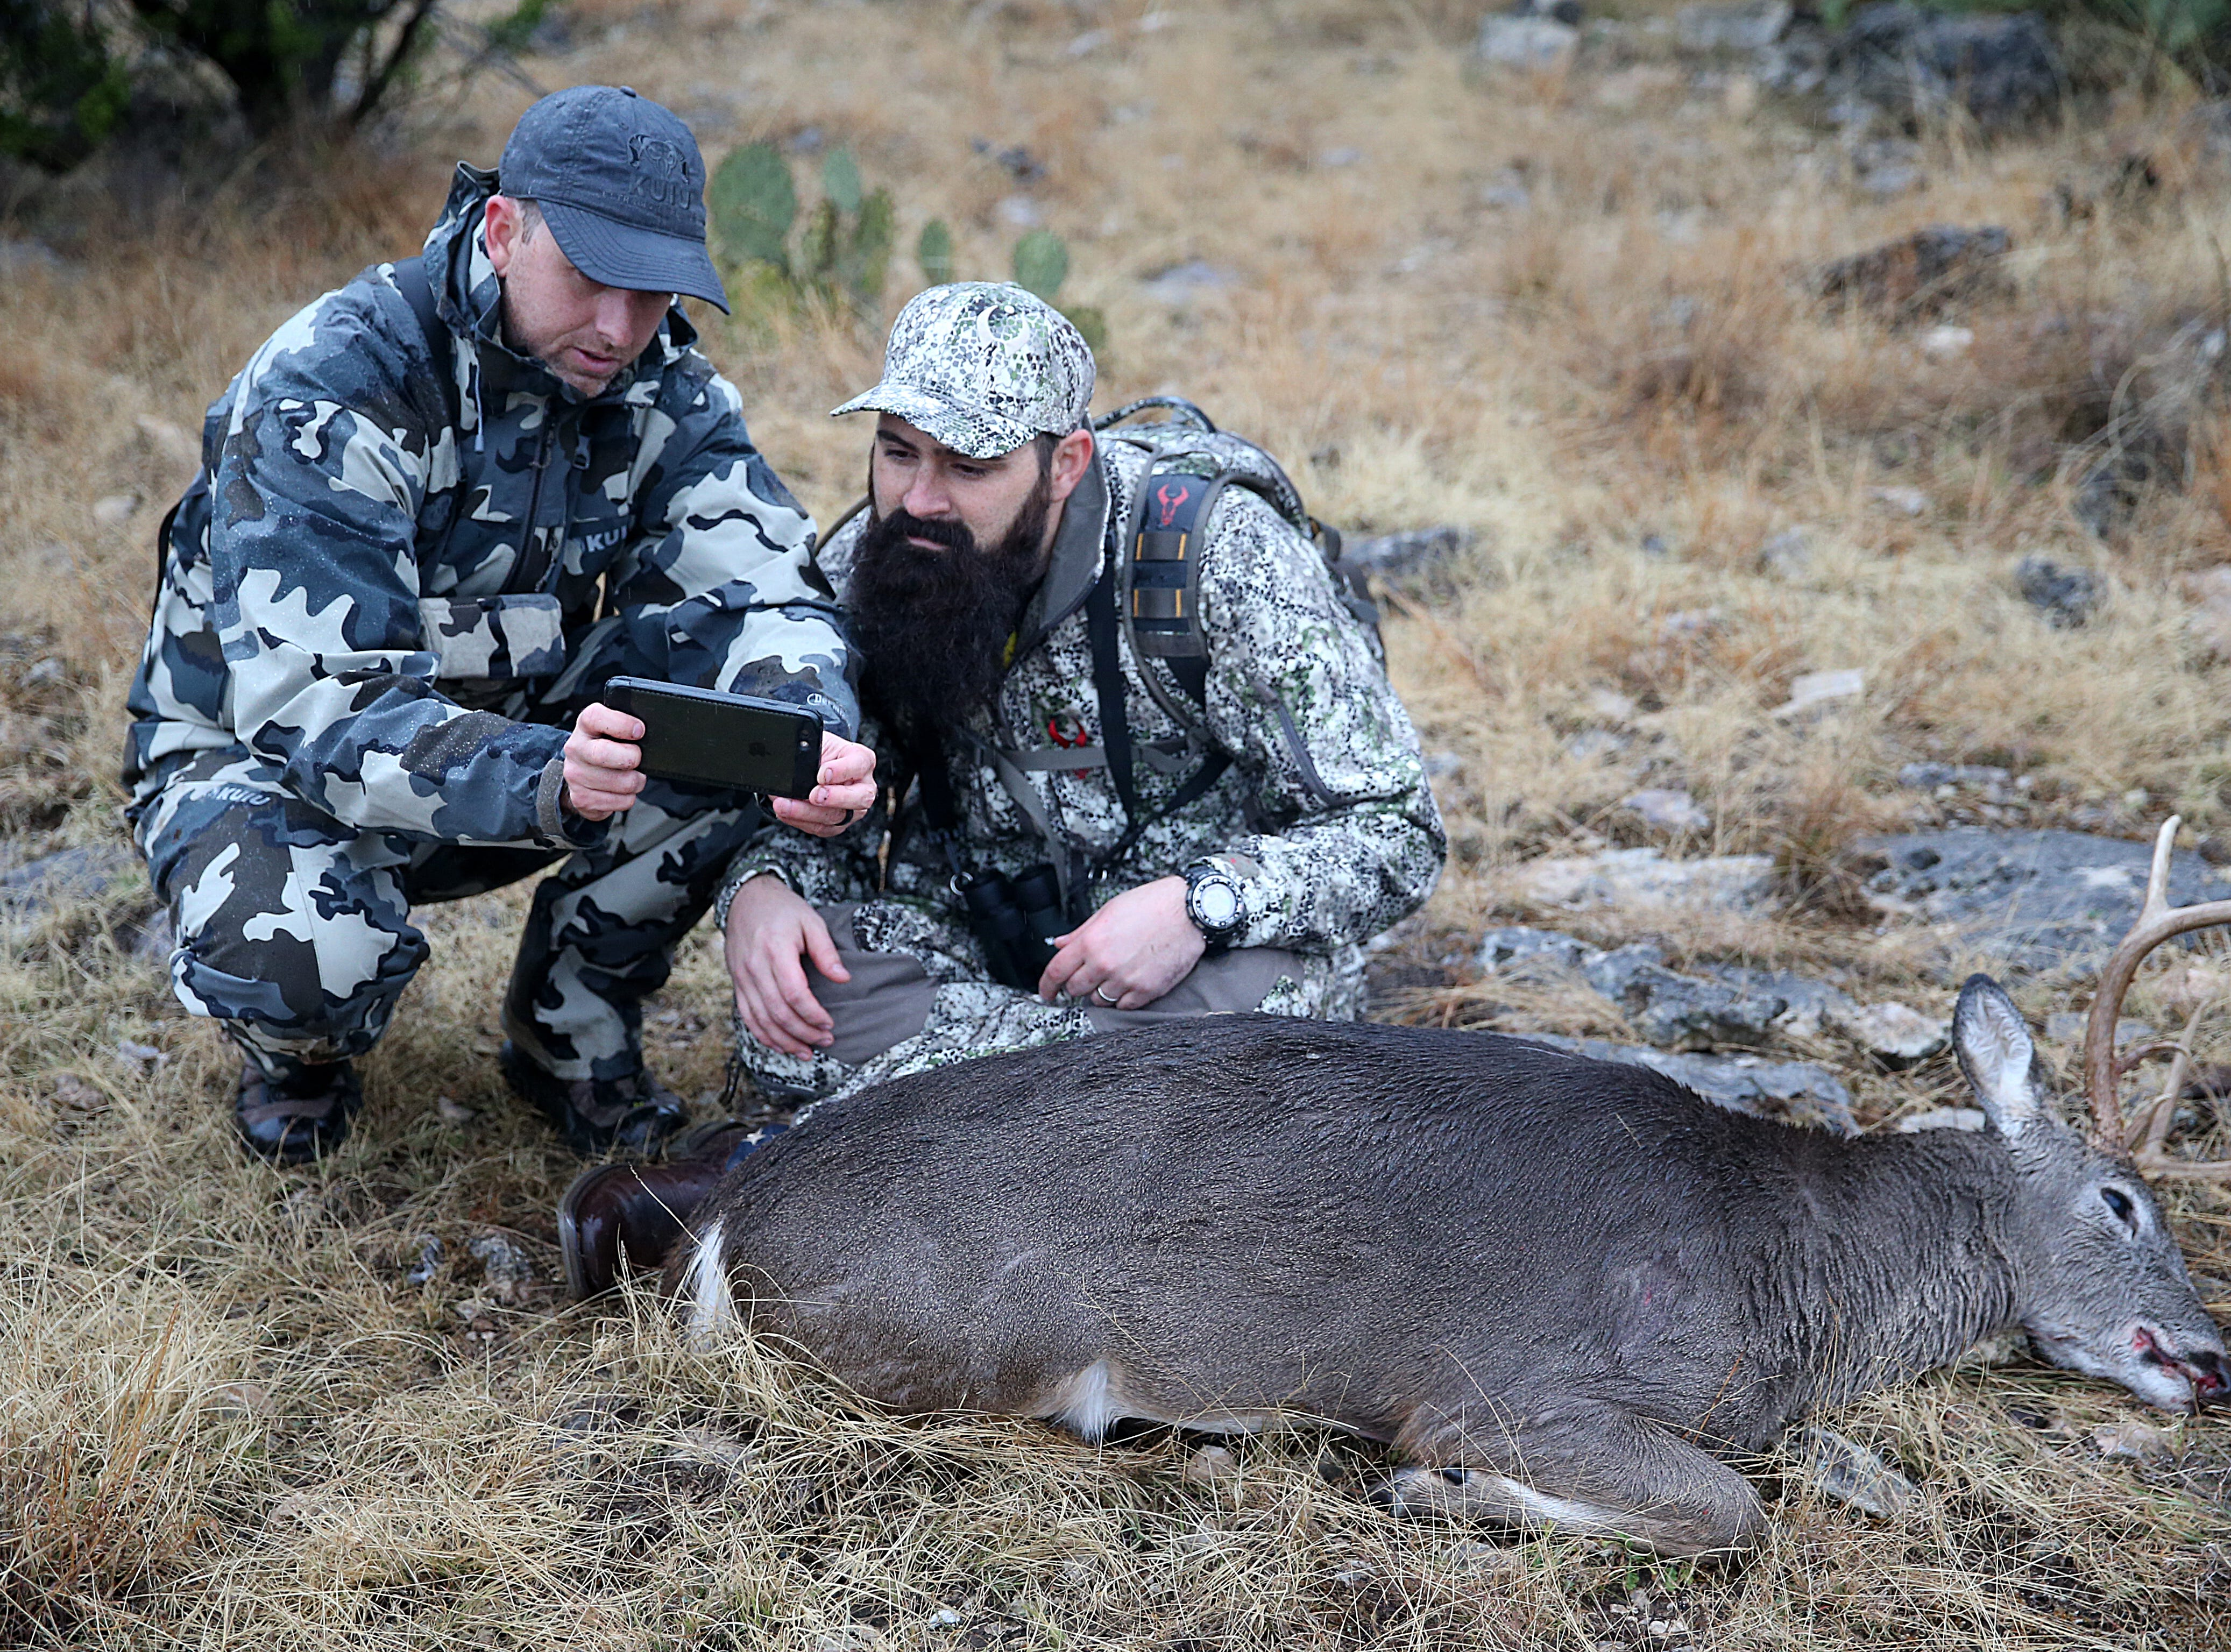 Ryan Dupriest (left) shows Joseph Lewis photos of himself posing with his deer Friday, Dec. 7, 2018 during the annual deer hunt in Christoval sponsored by San Angelo Support for Veterans and Lone Star Warriors Outdoors.